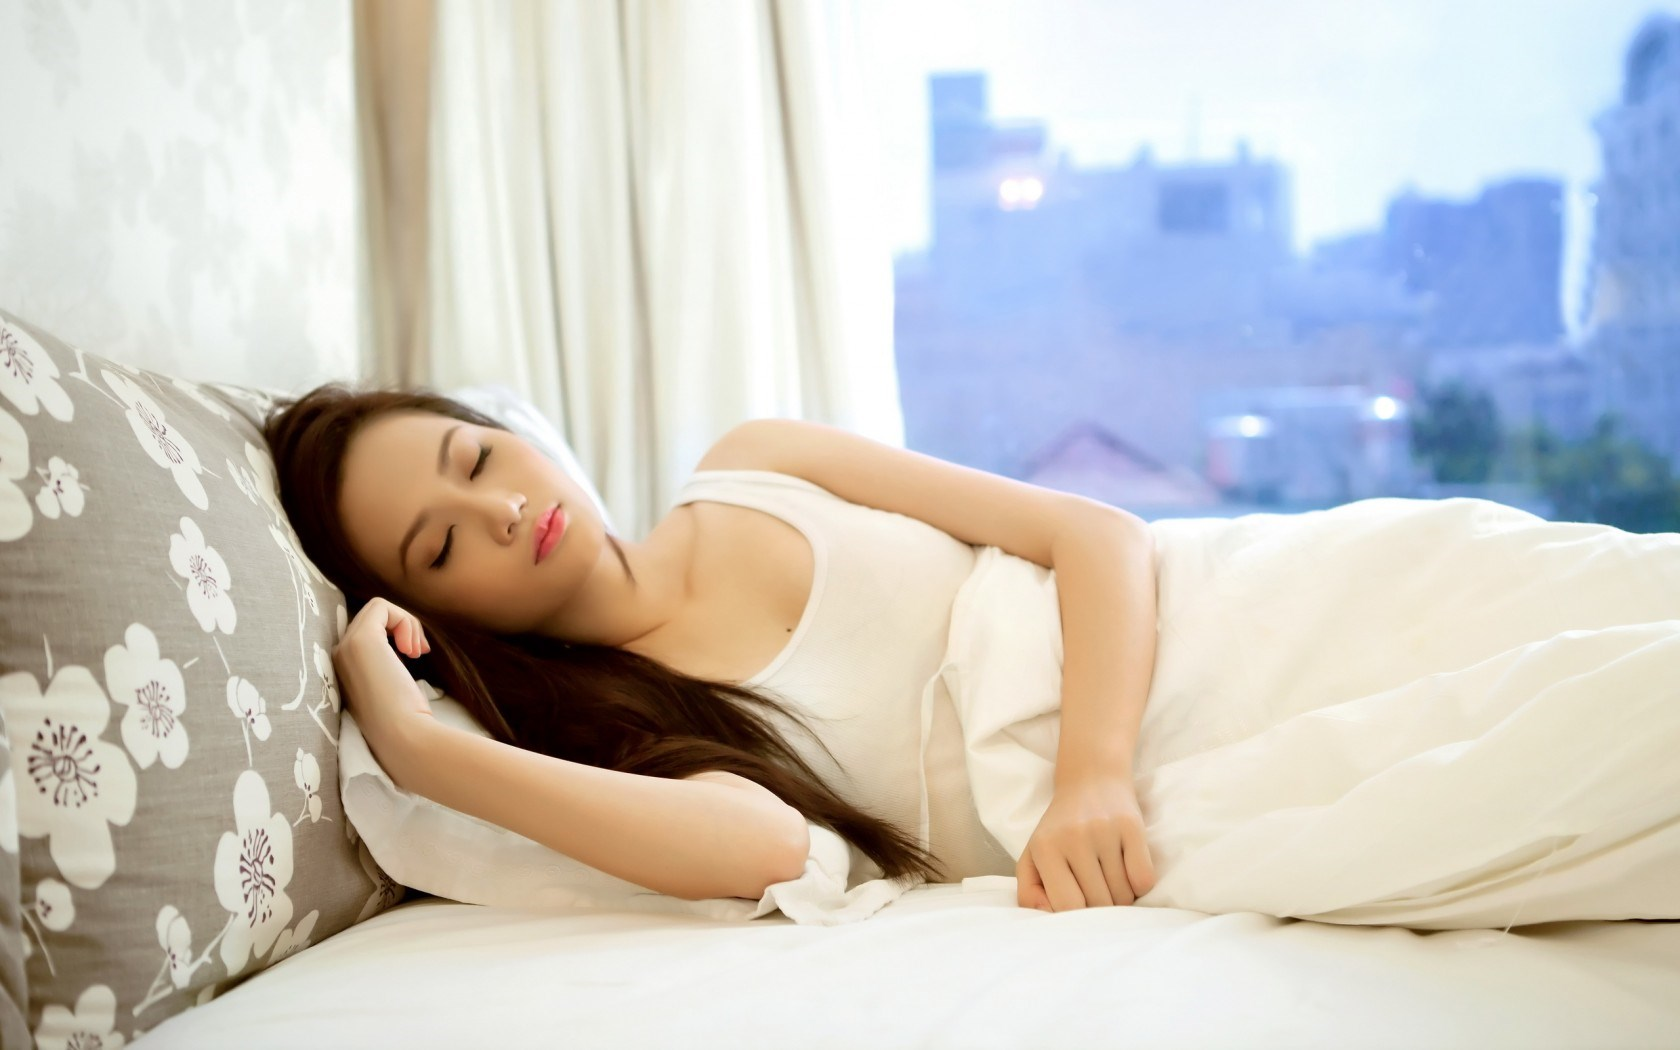 Beautiful-Sleep-Woman-Picture-6524